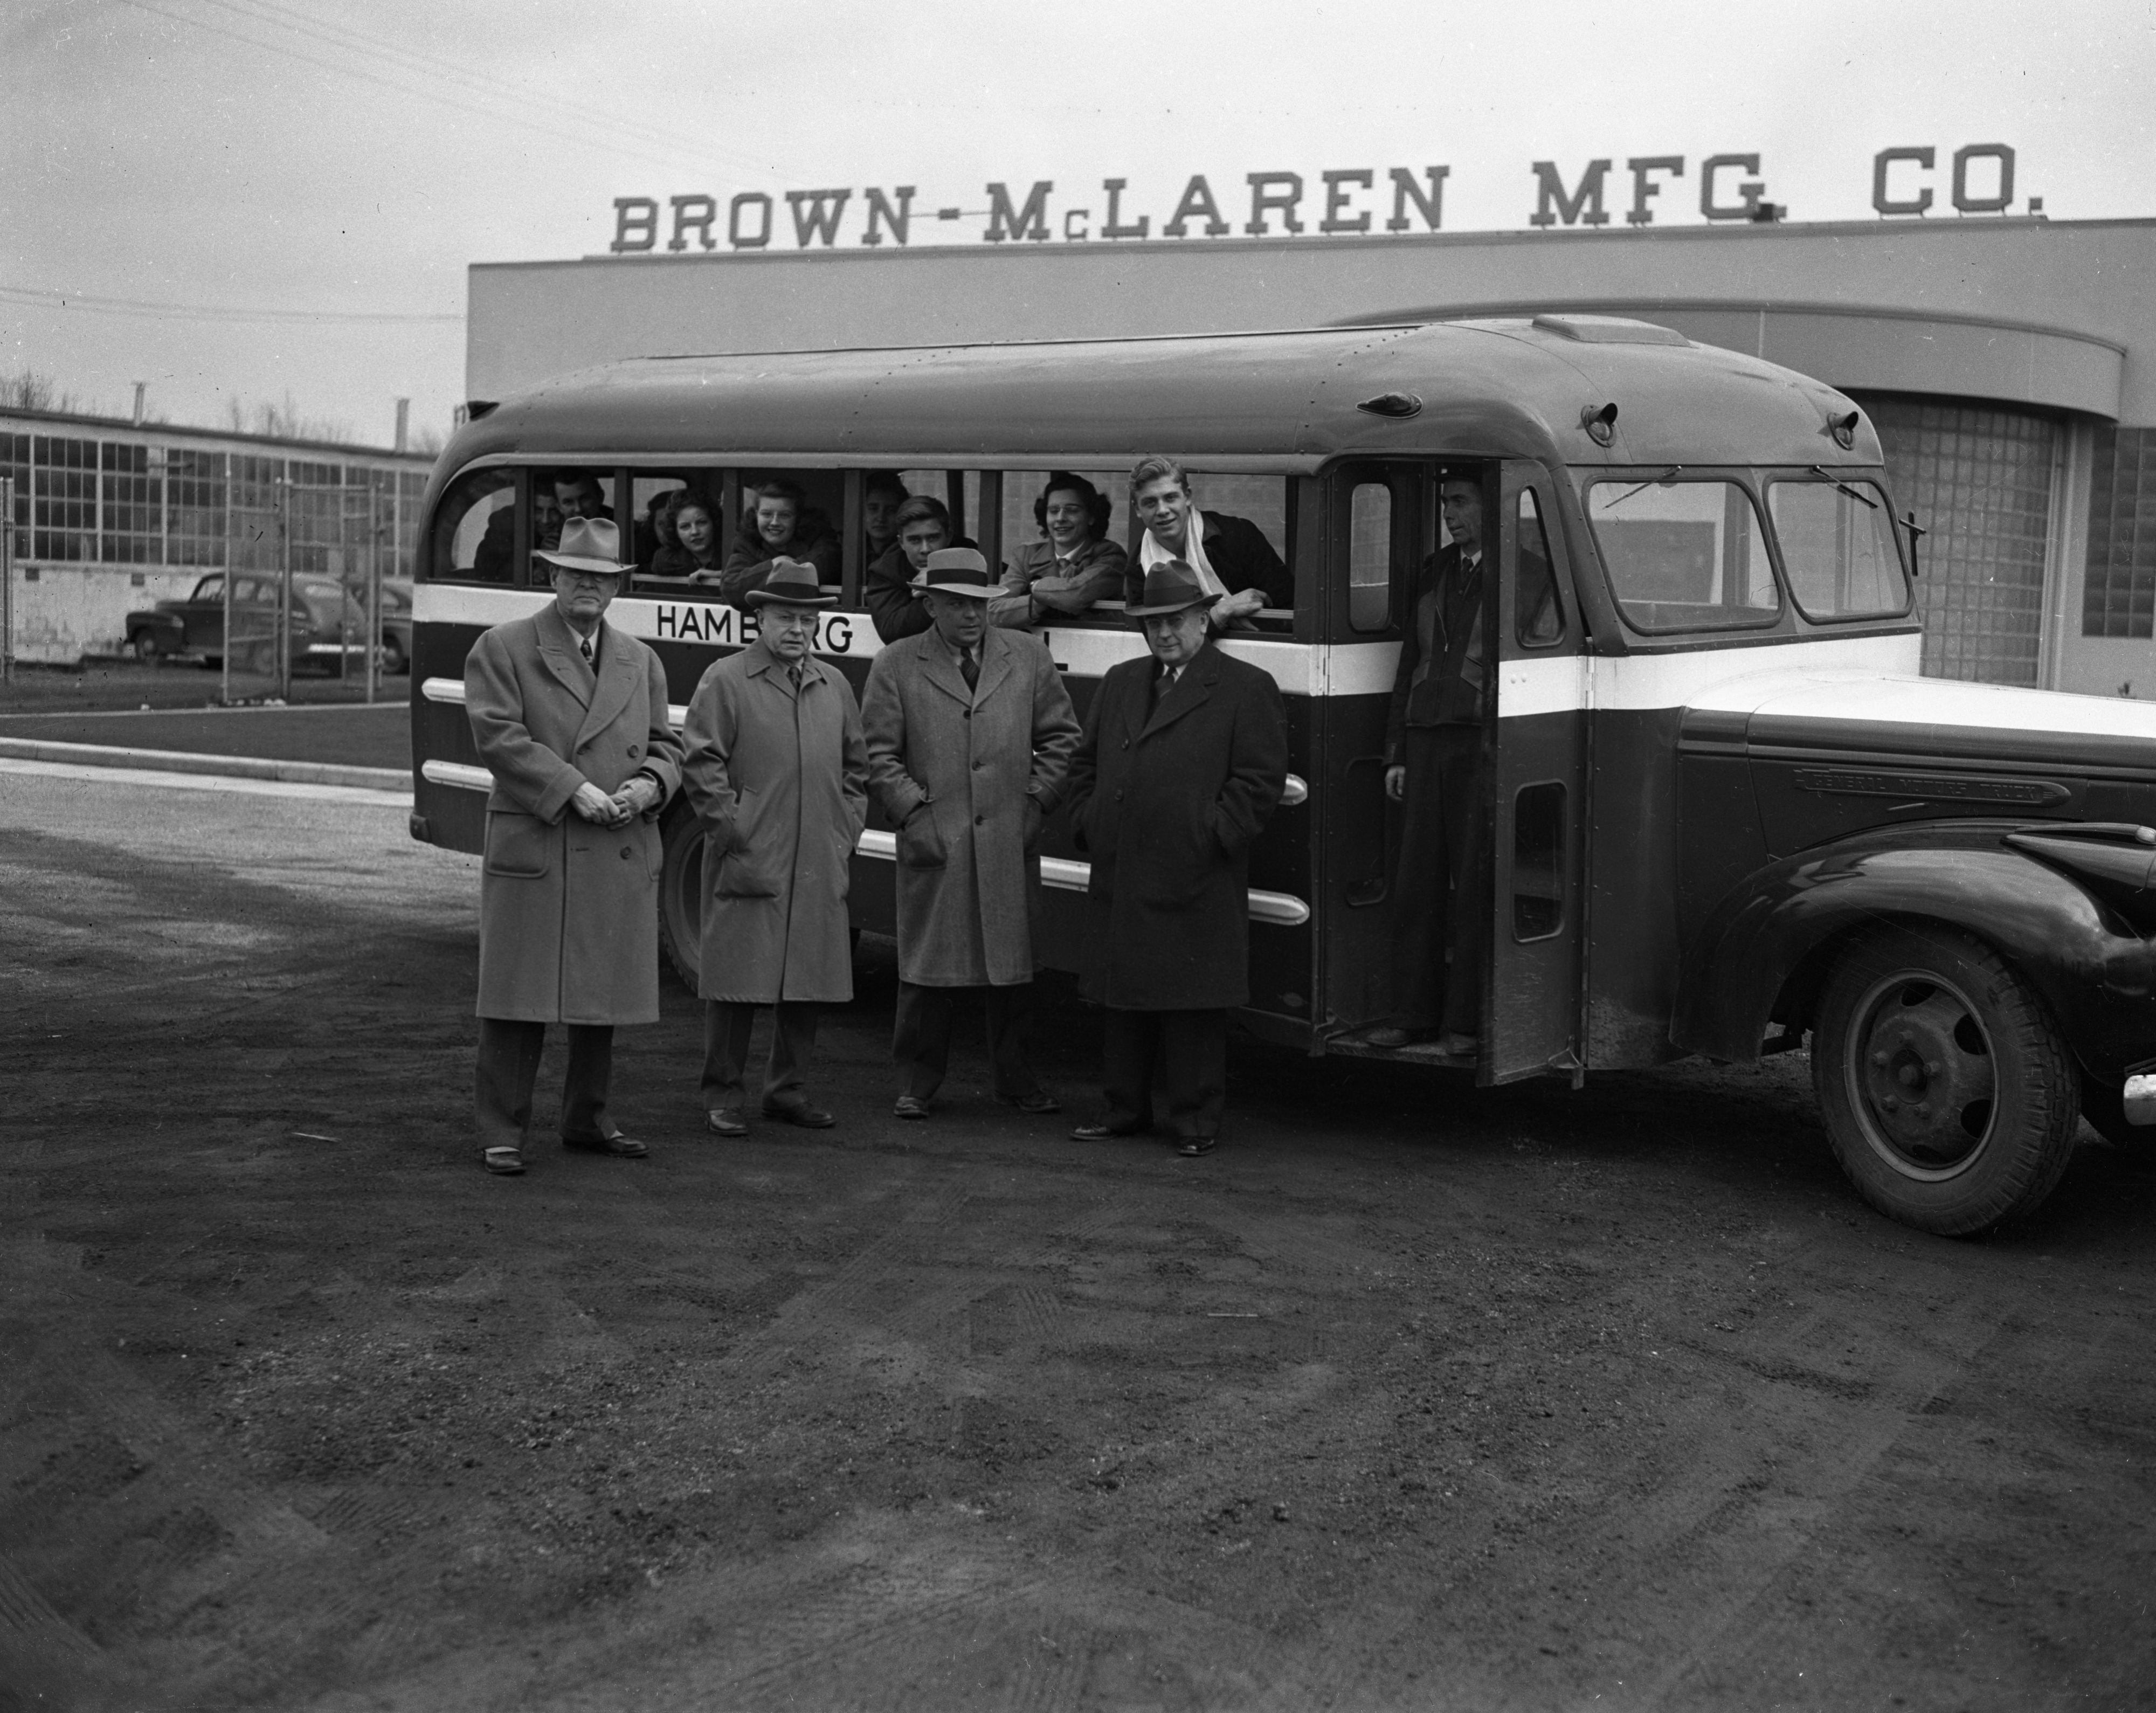 Hamburg bus purchased by Brown-McLaren Manufacturing to transport Hamburg children to Ann Arbor schools, March 1944 image